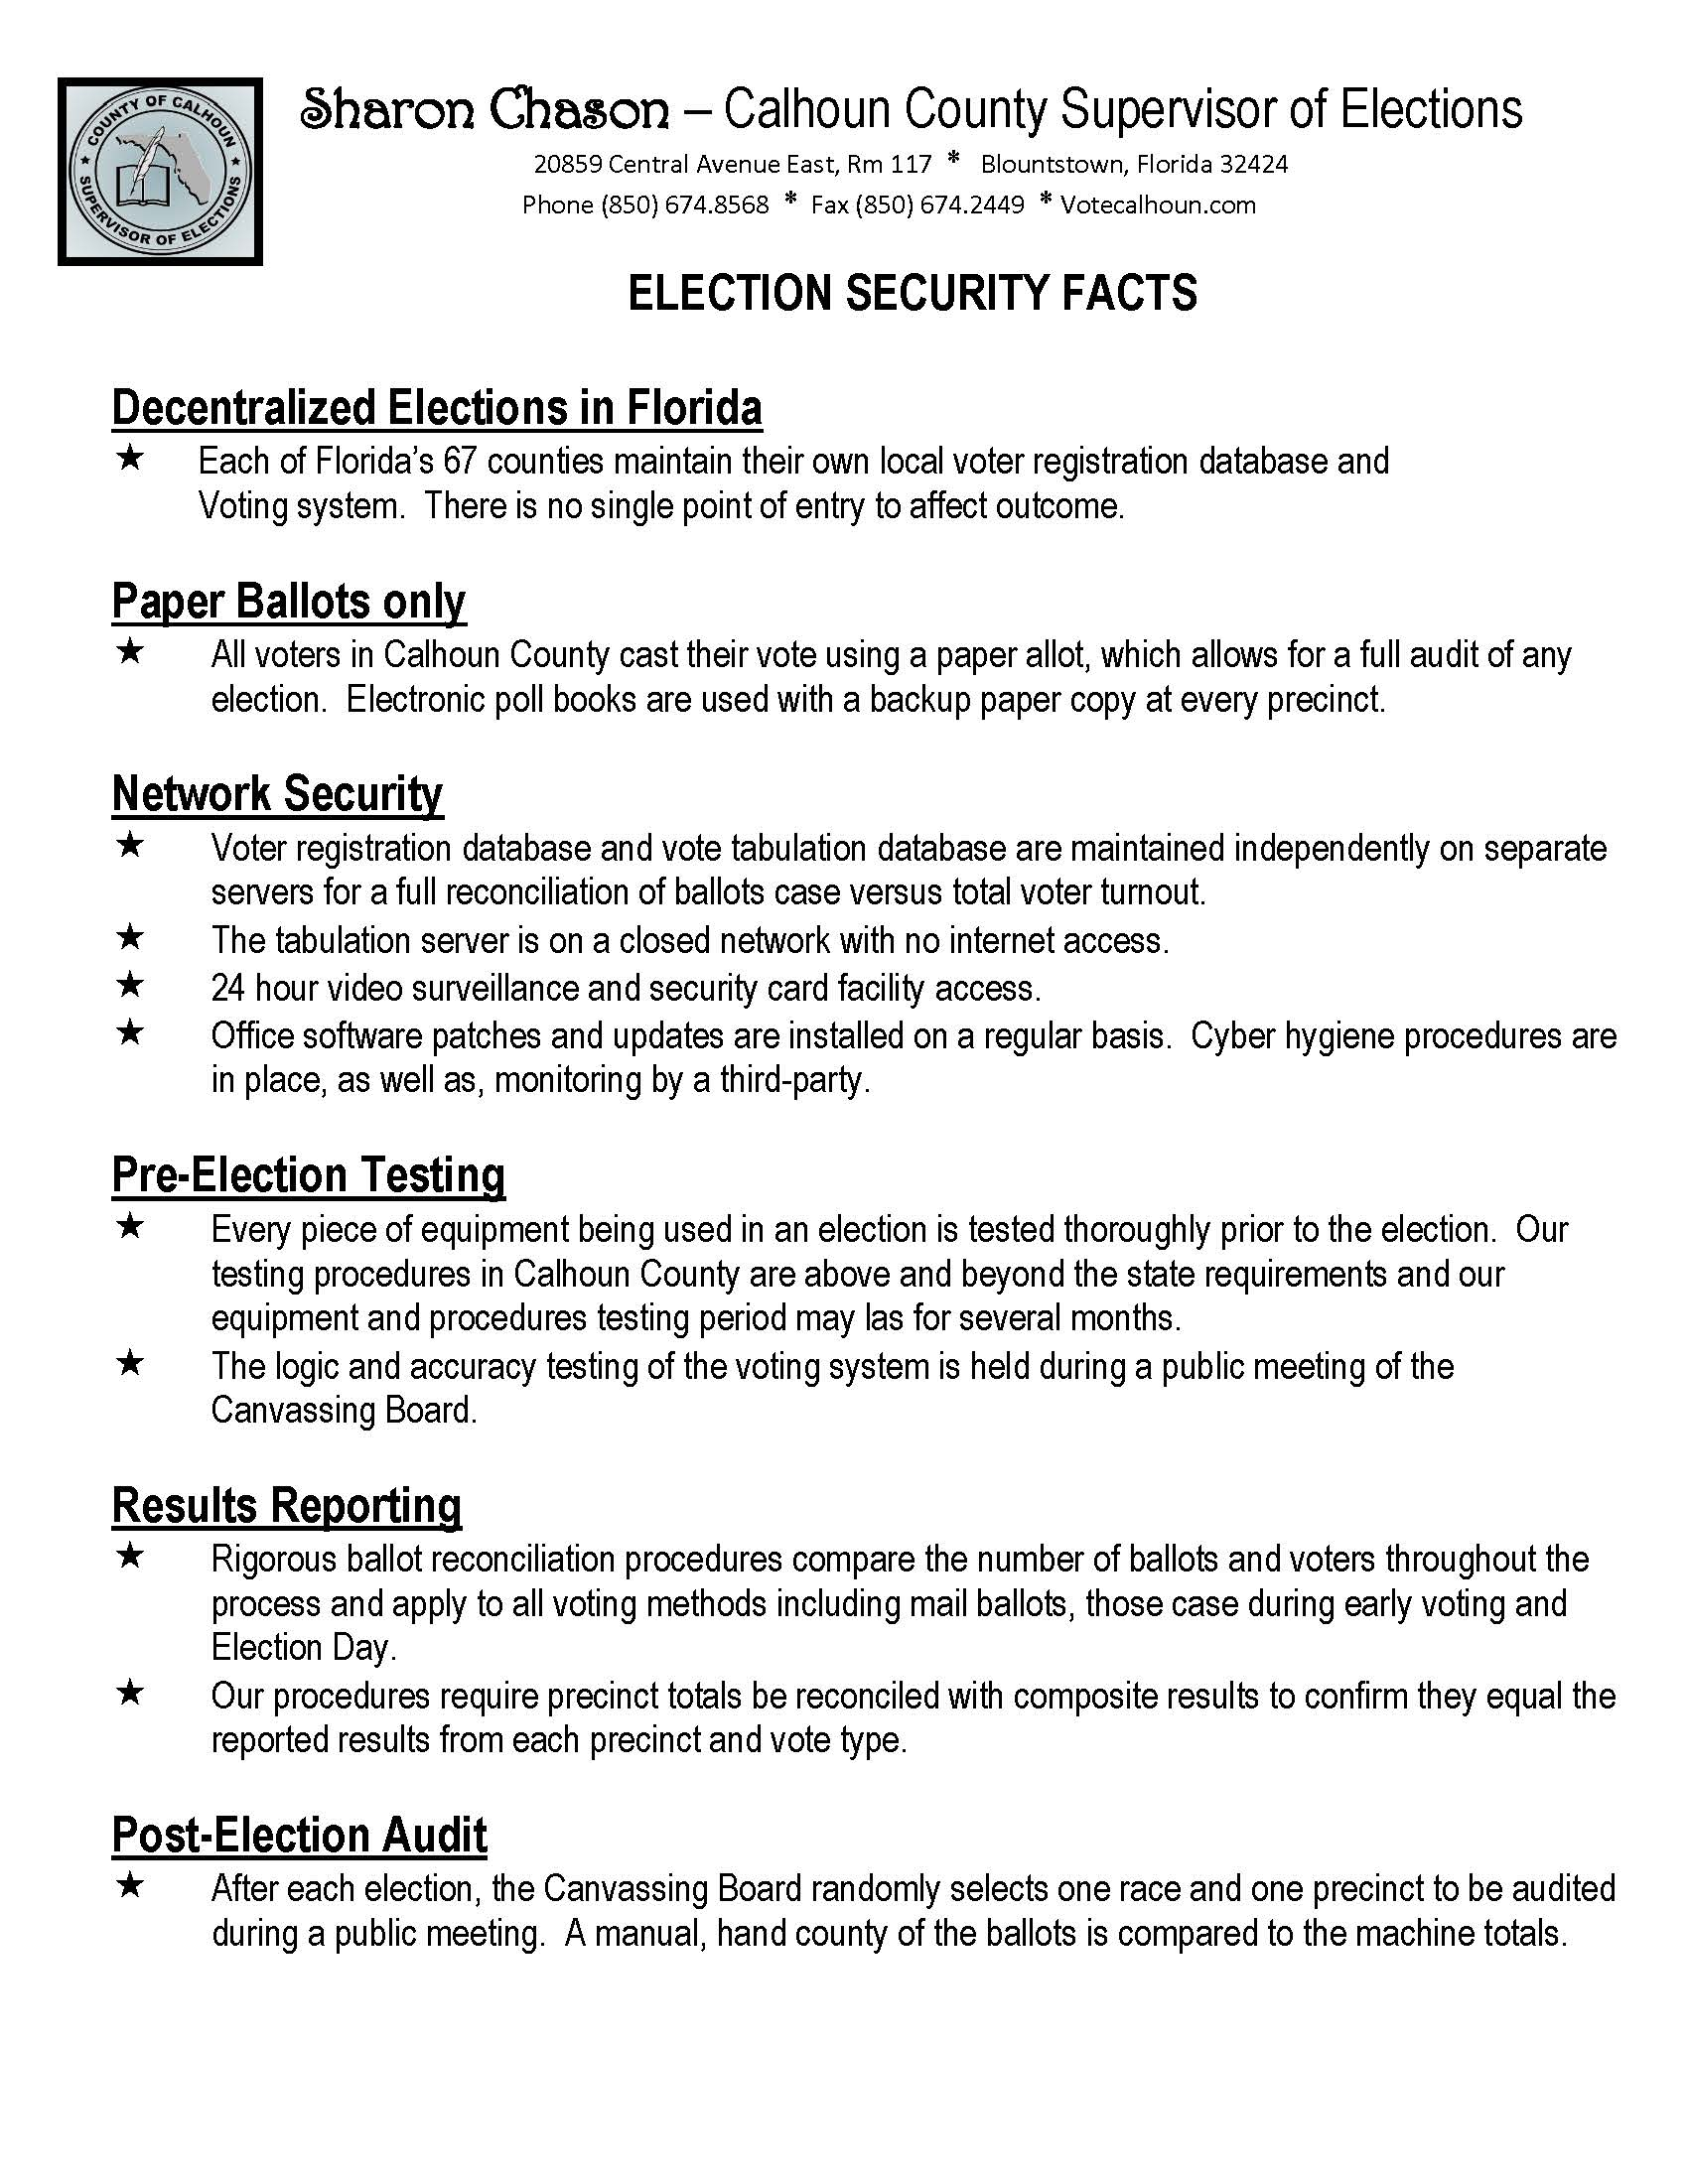 Election Security Facts637256759619603078